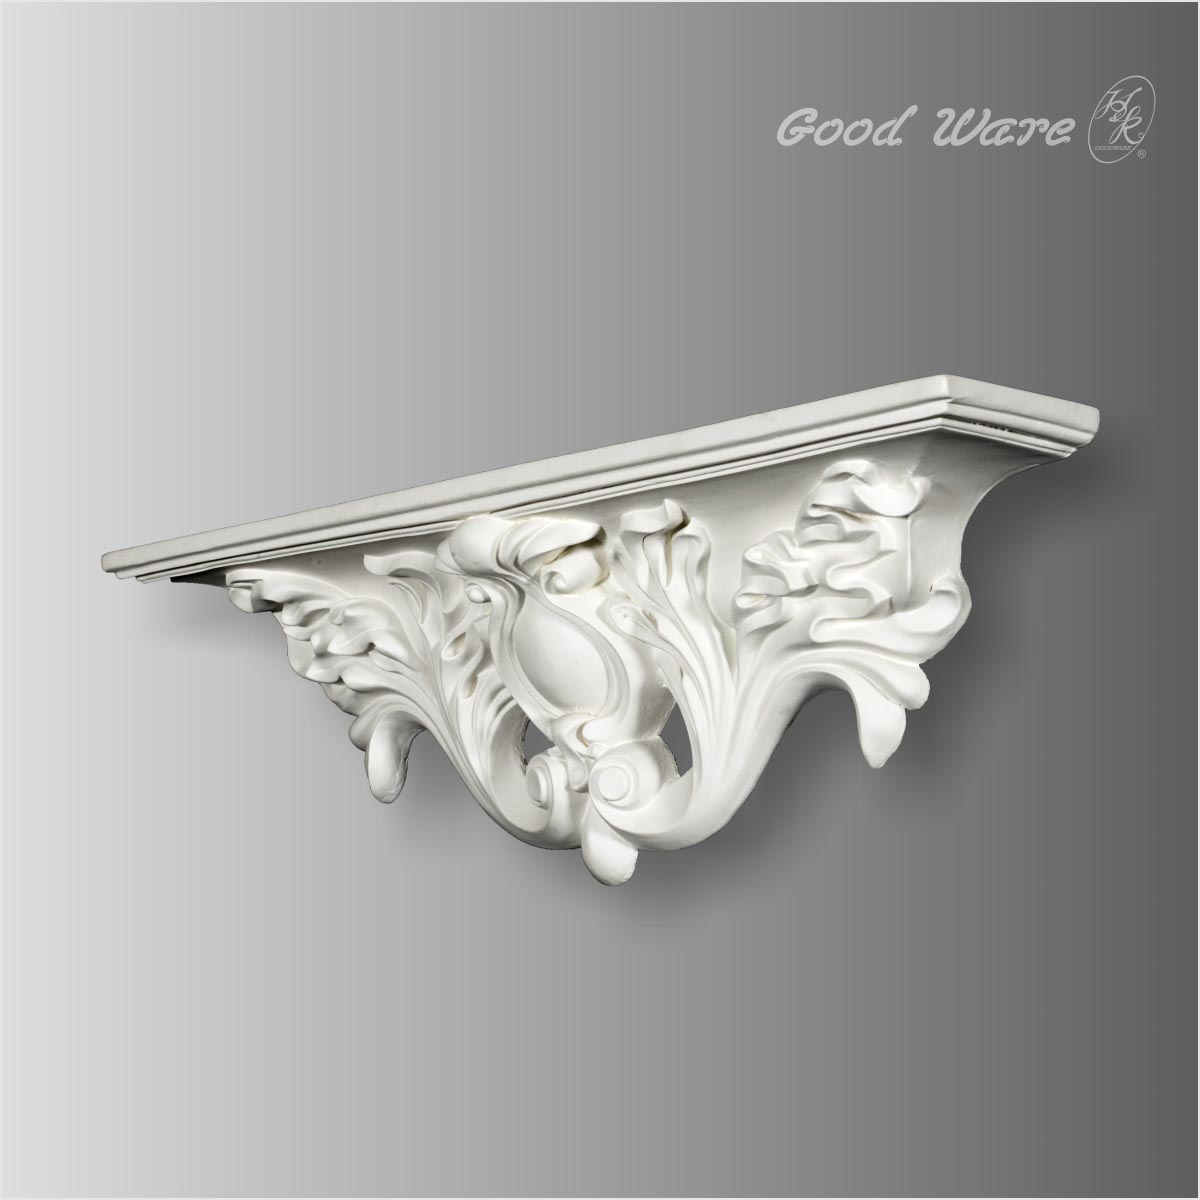 Antique decorative wall brackets for shelves